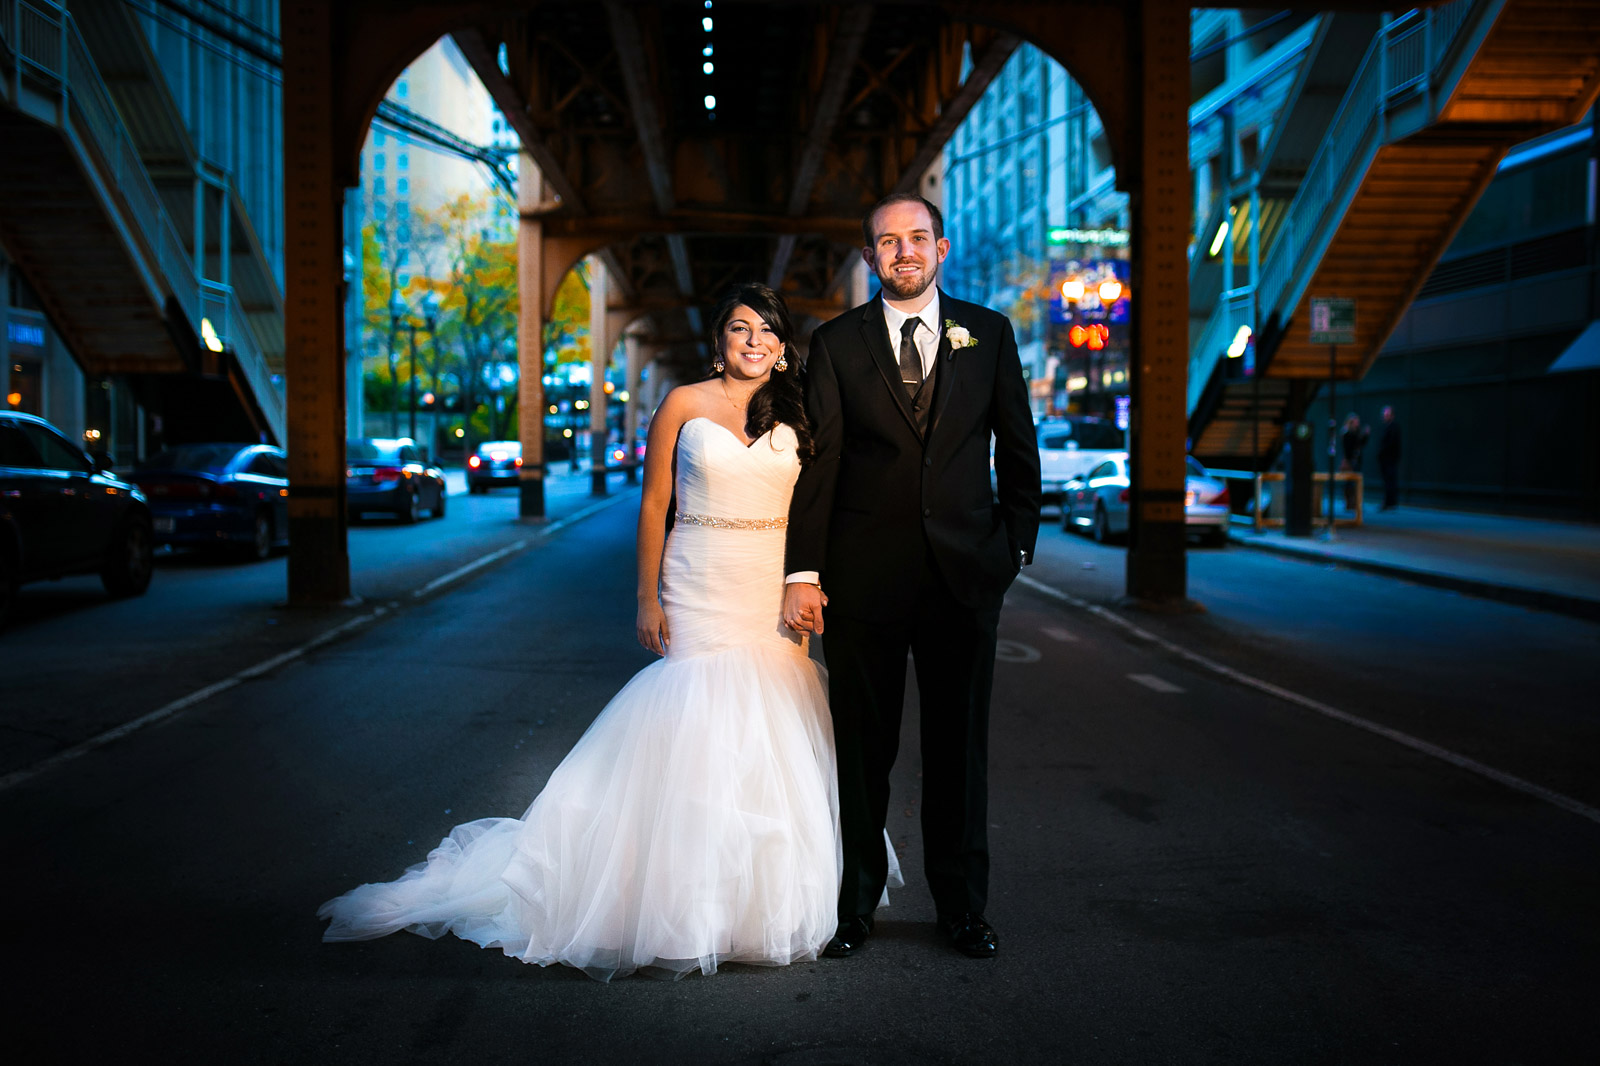 Bride and Groom in street under Chicago EL train track